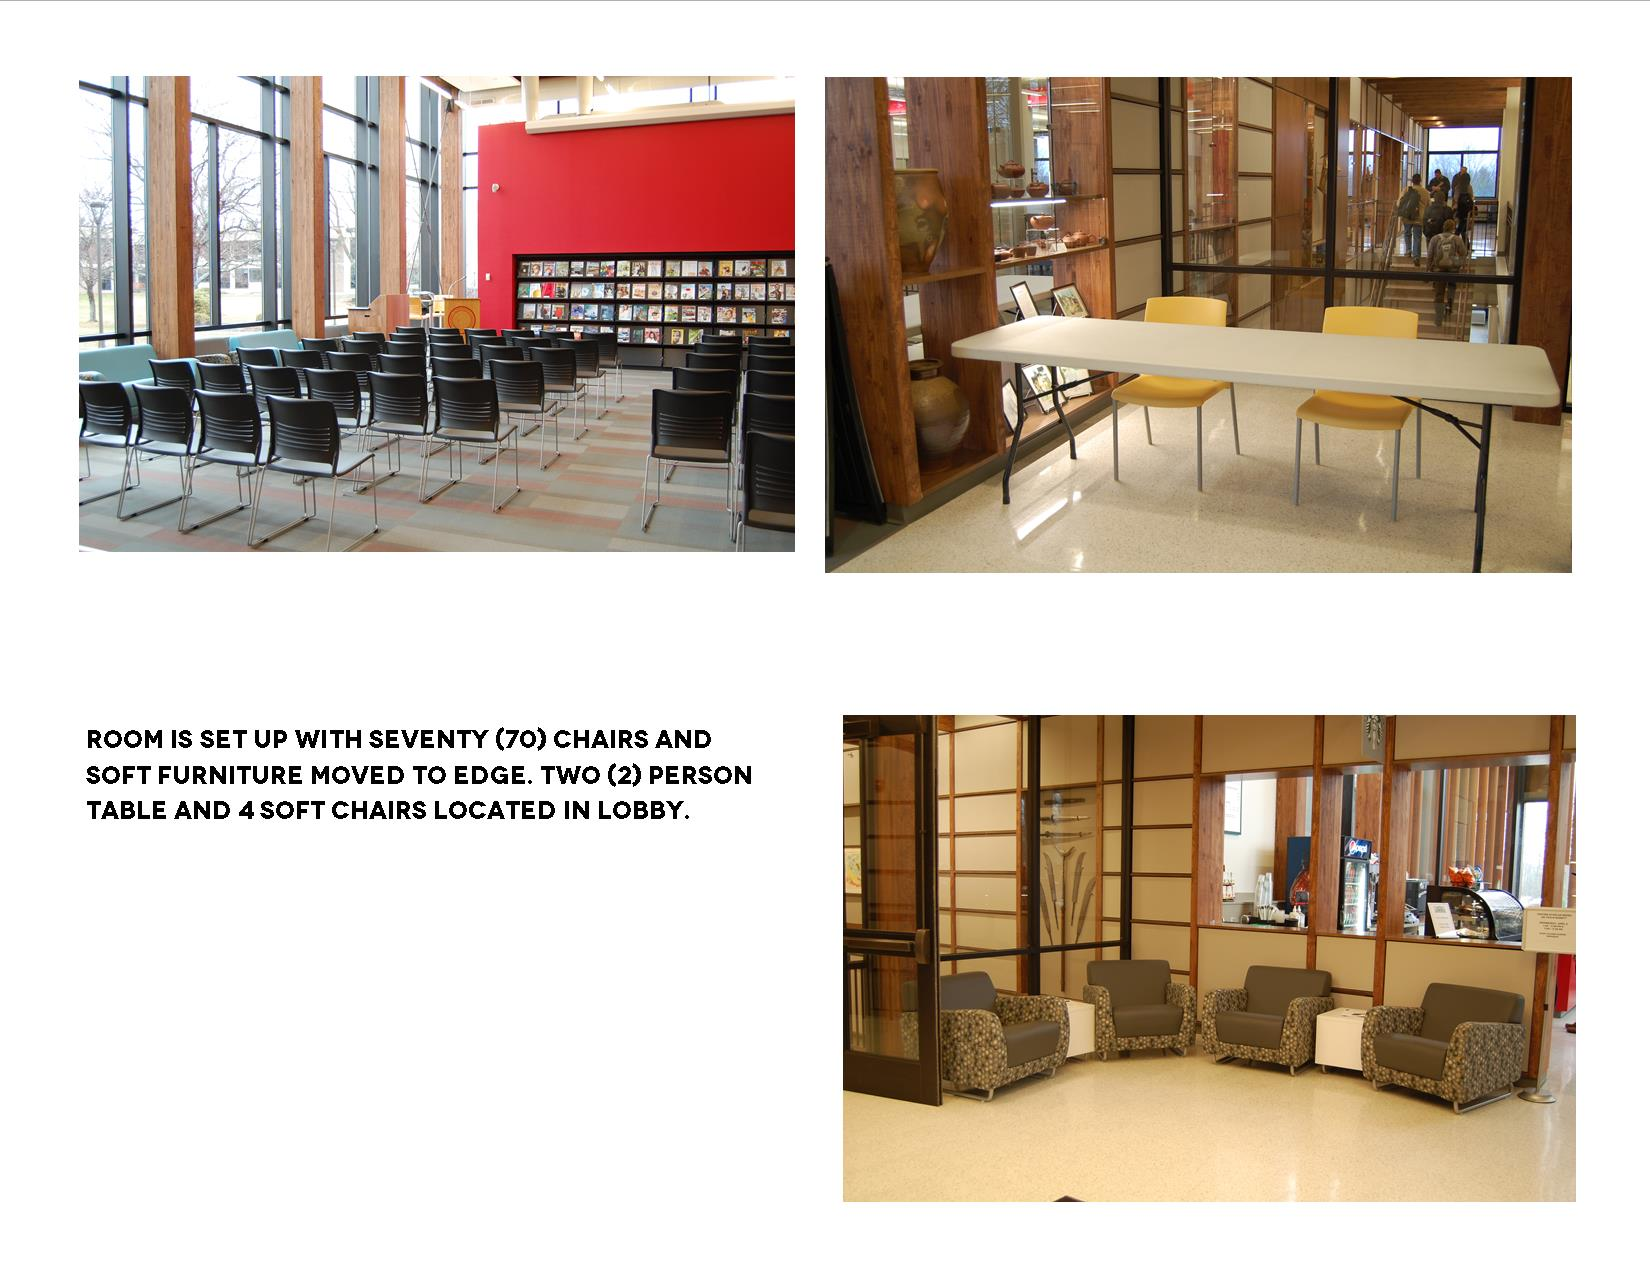 Room is set up with 70 chairs and soft furniture moved to edge. Two person talbe and 4 soft chairs located in lobby.